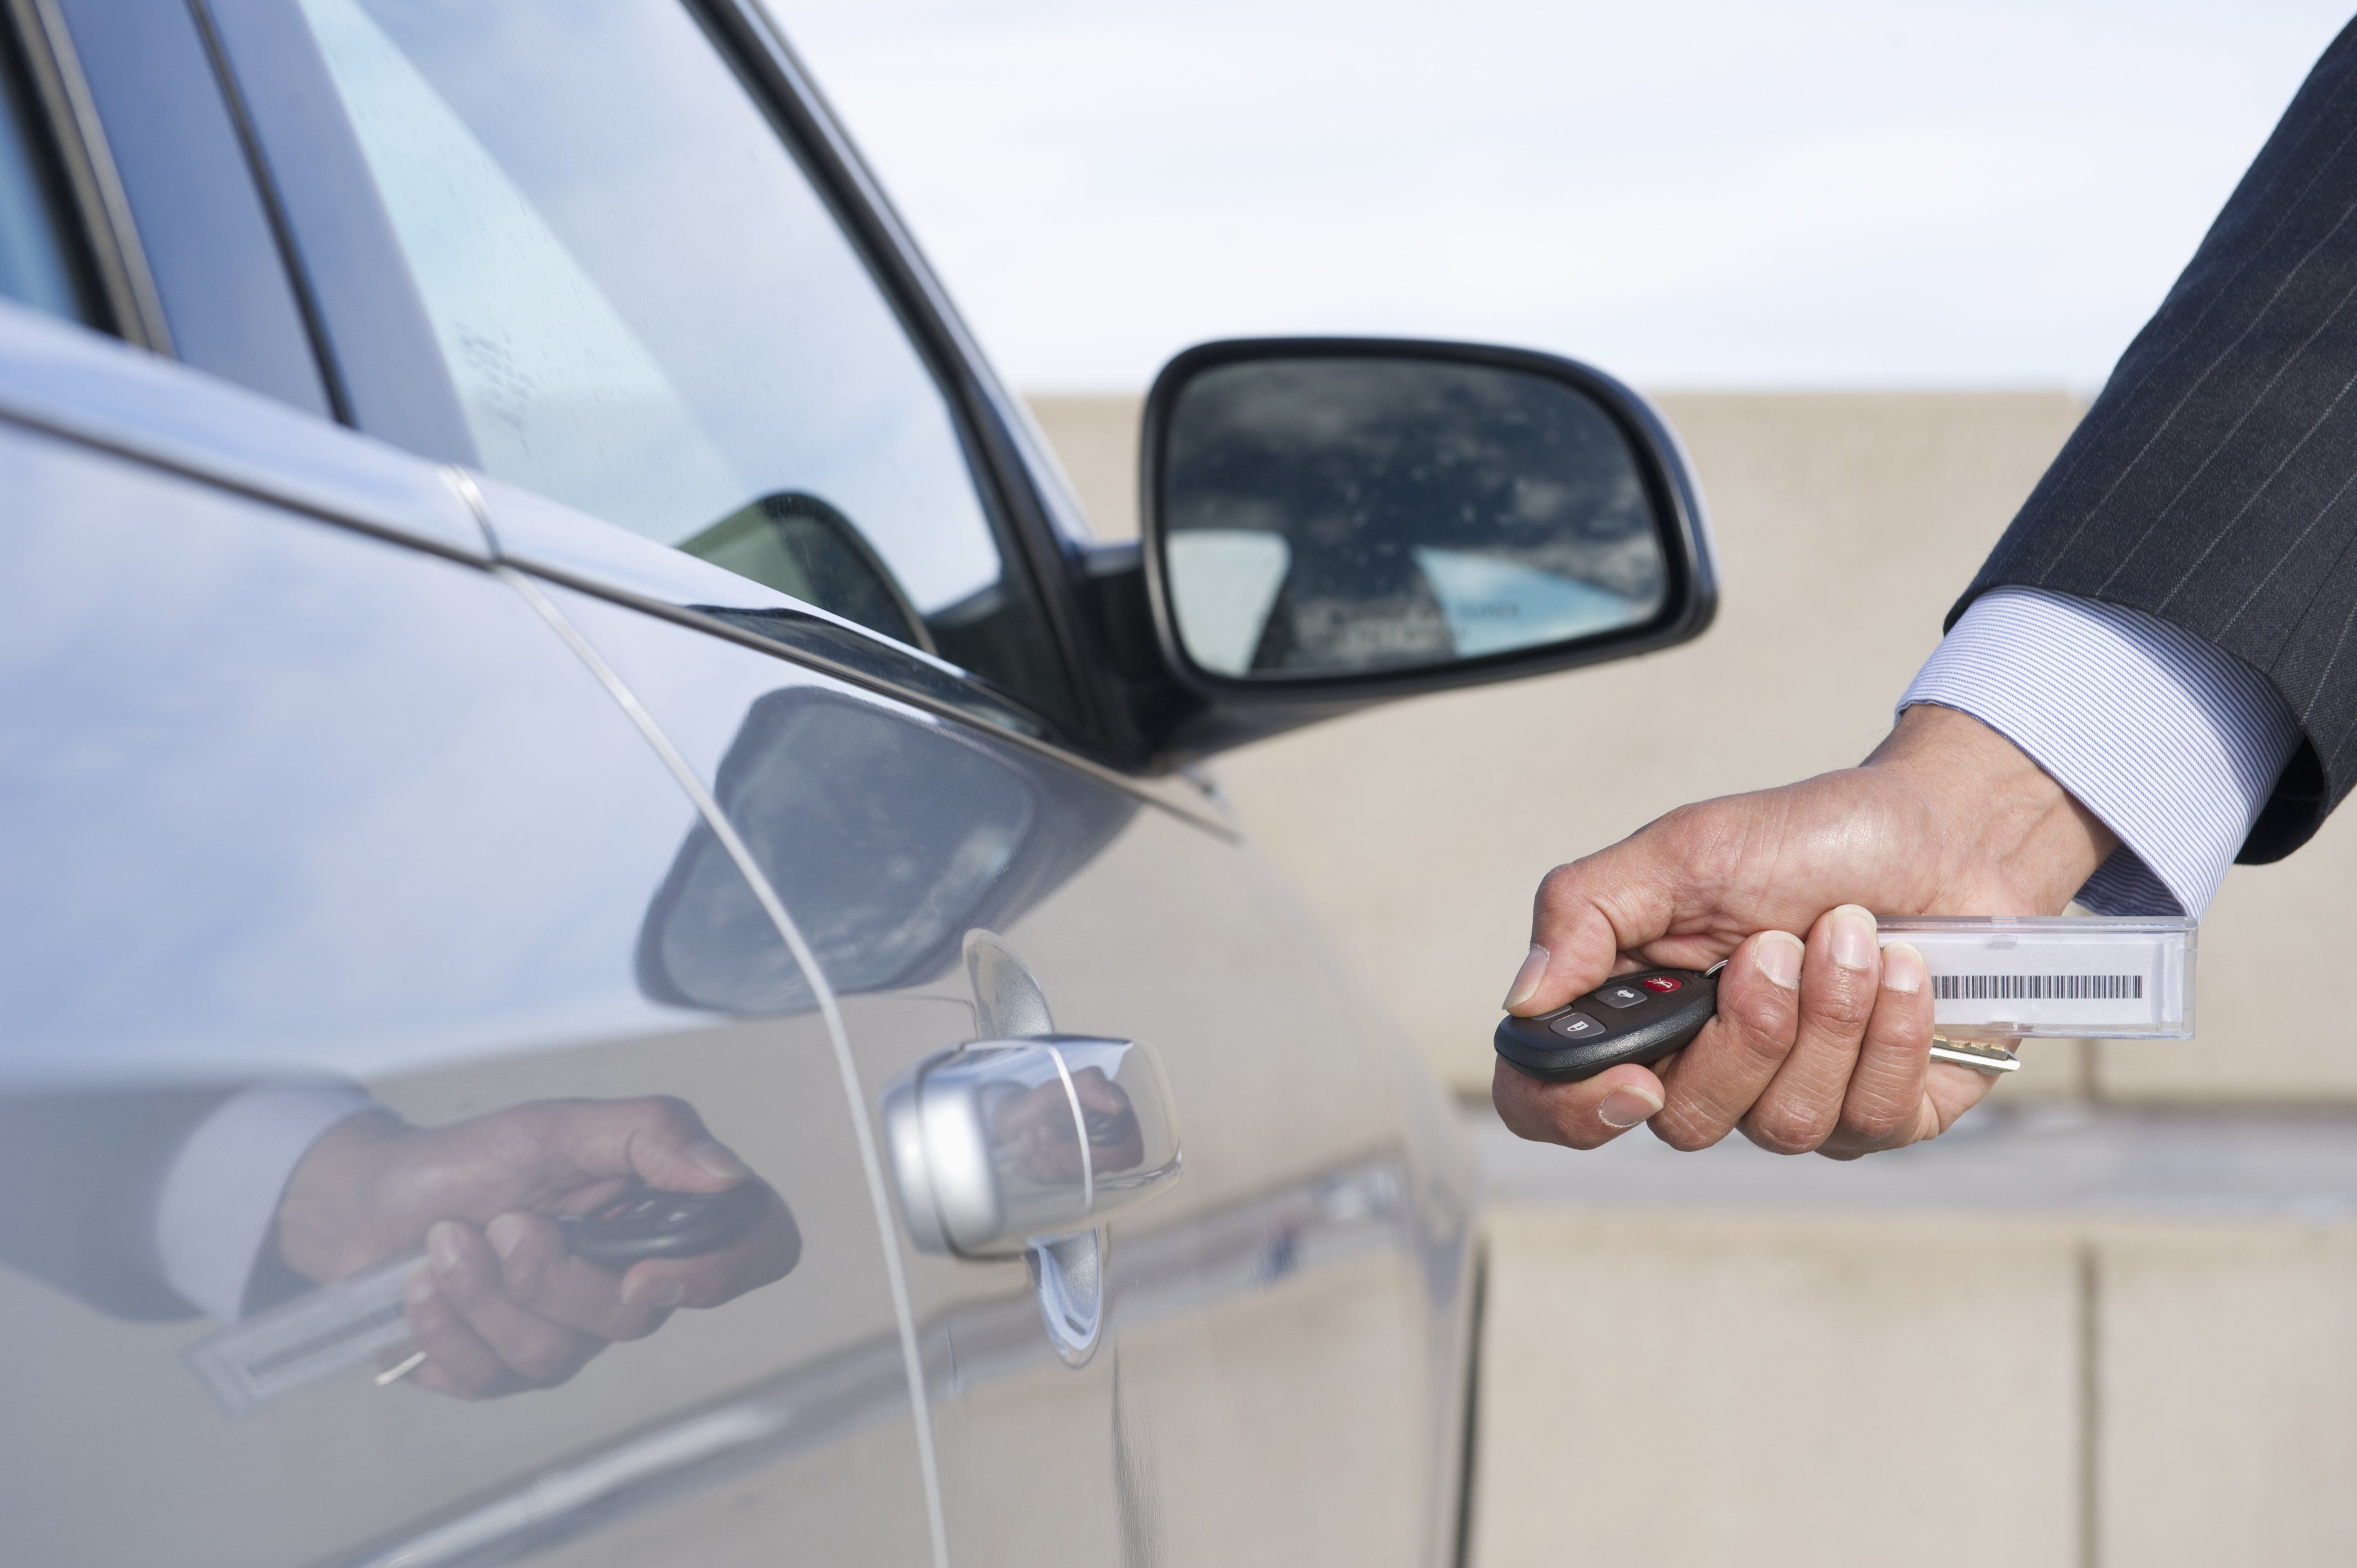 Auto Key Pro Provides A Mobile Replacement Car Key Service To